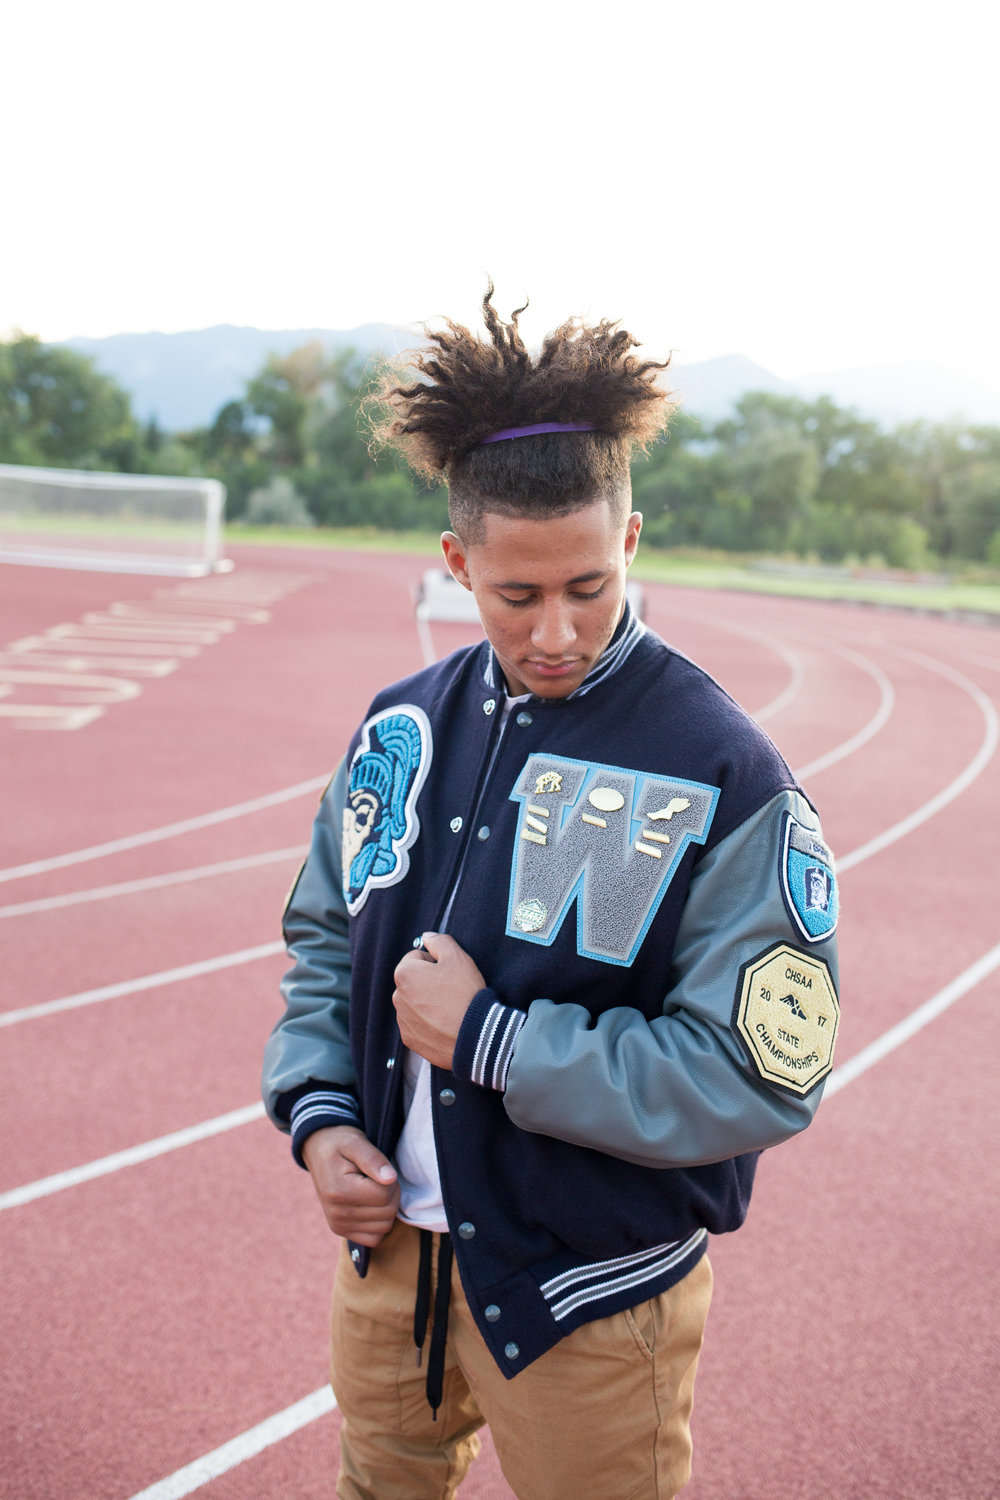 Senior in varsity jacket looking at his badges and pins while standing on a track. Stacy Carosa Photography Colorado Springs senior photography